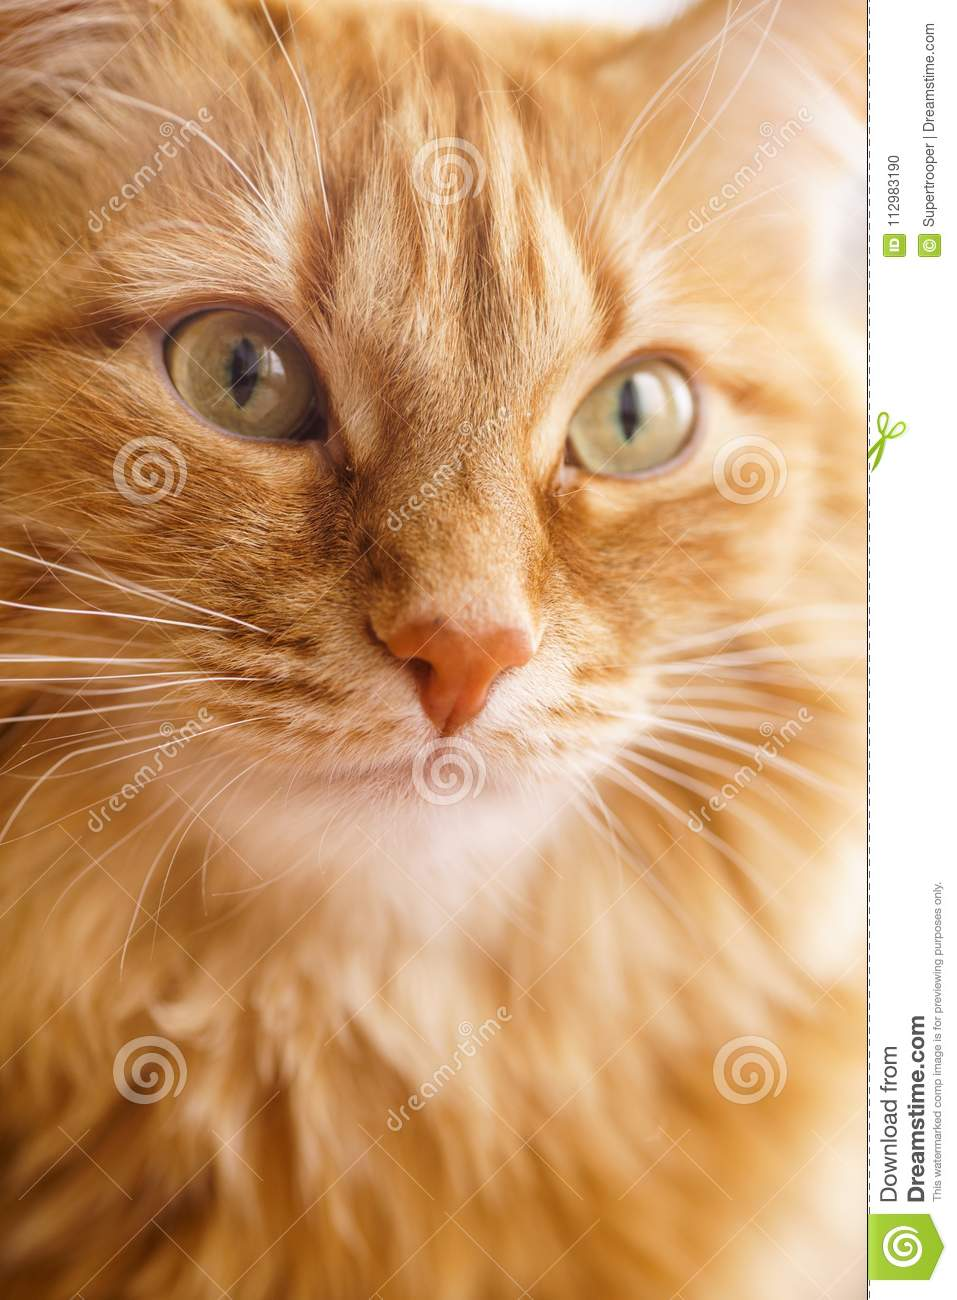 Brown Cat, Red Male Cat, Ginger Cat